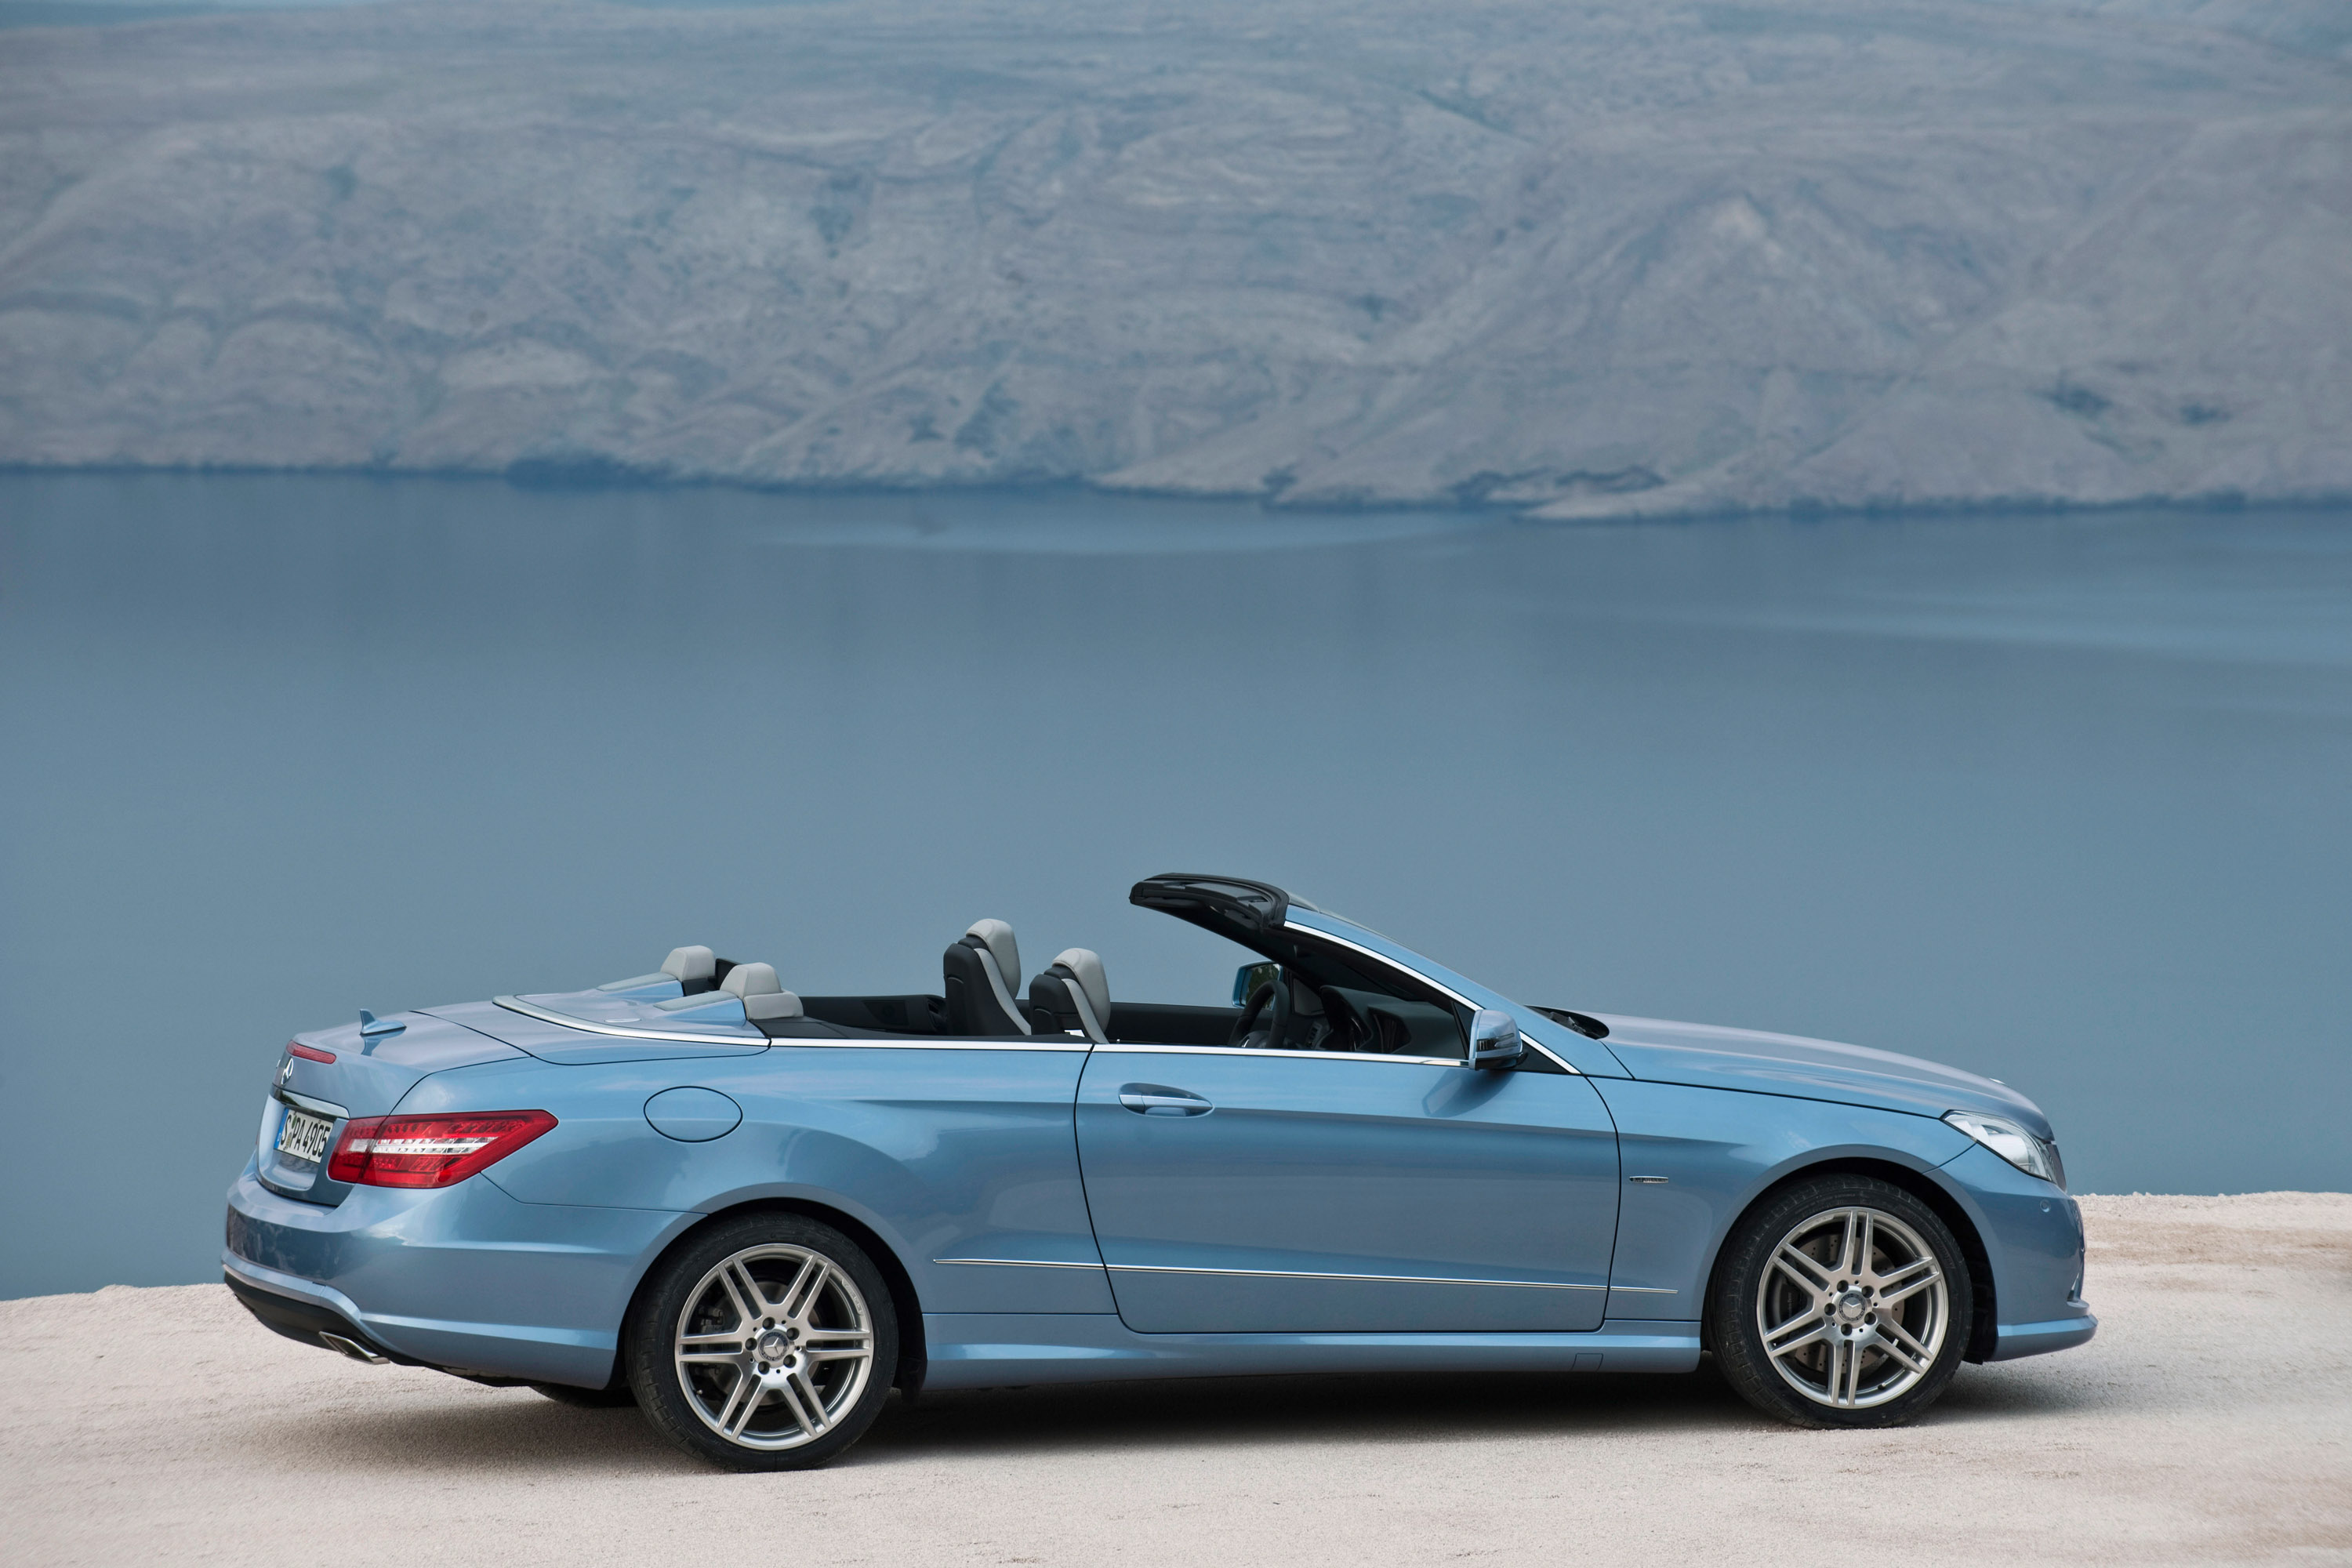 2010 mercedes benz e class cabriolet great open air emotions. Black Bedroom Furniture Sets. Home Design Ideas